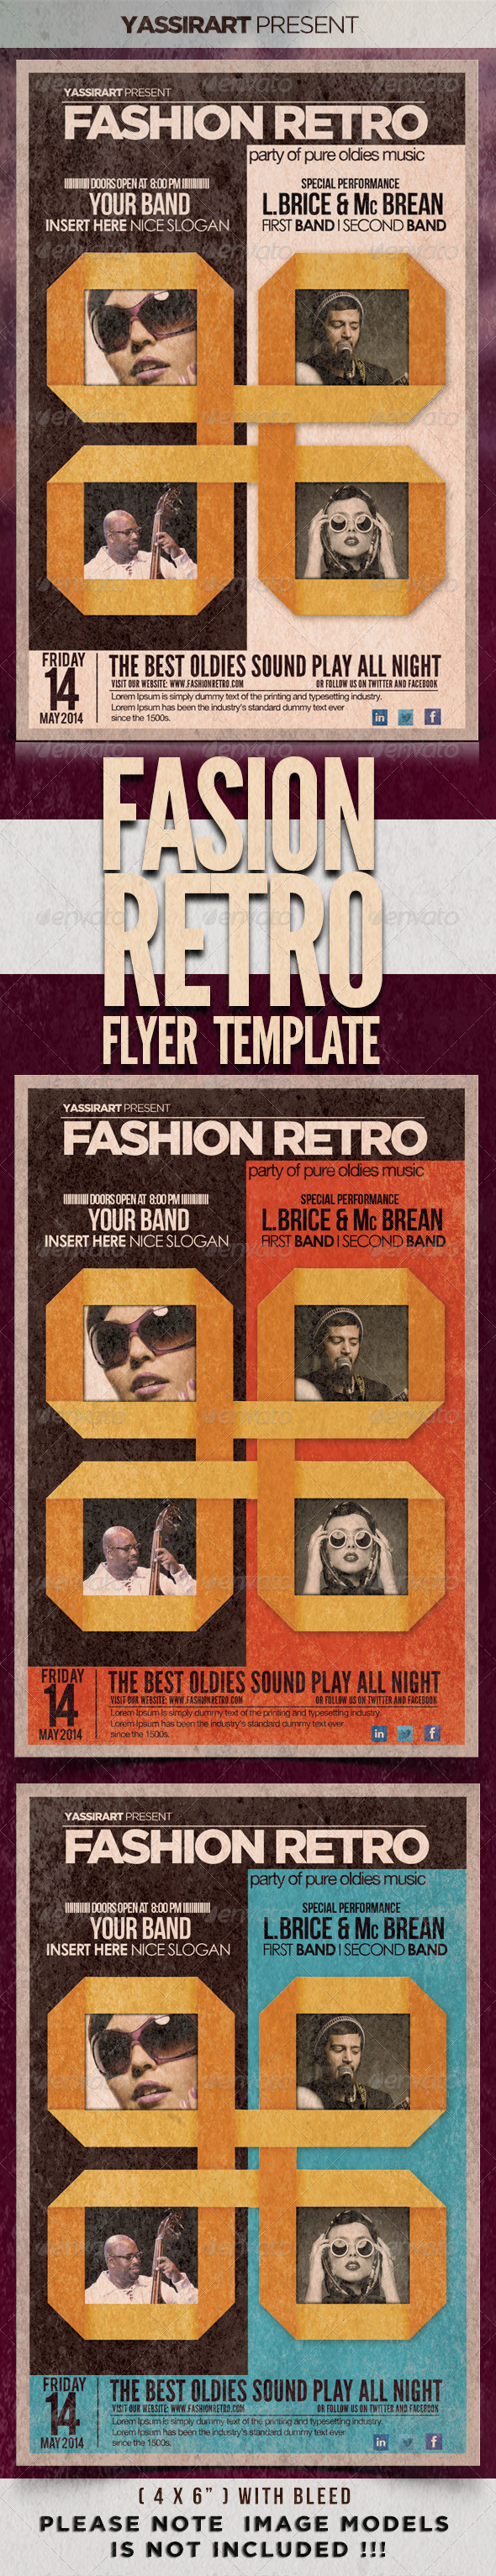 Fashion Retro Flyer Template - Flyers Print Templates